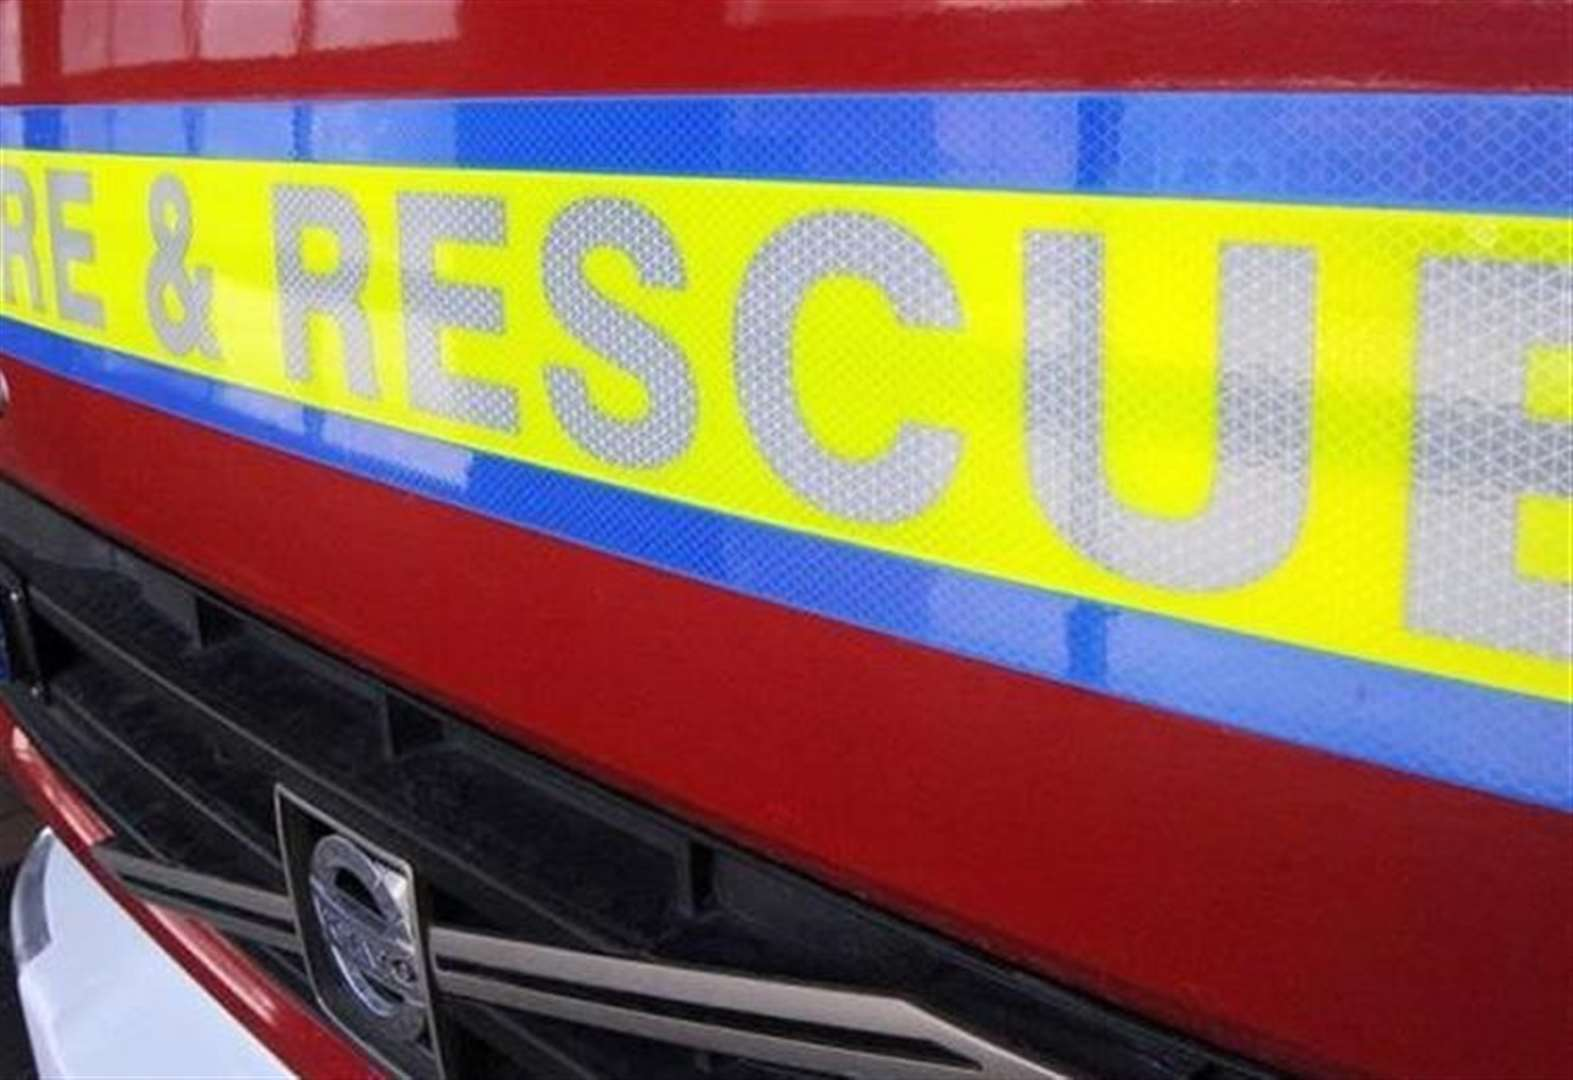 Fire crew called to property fire in Grantham street